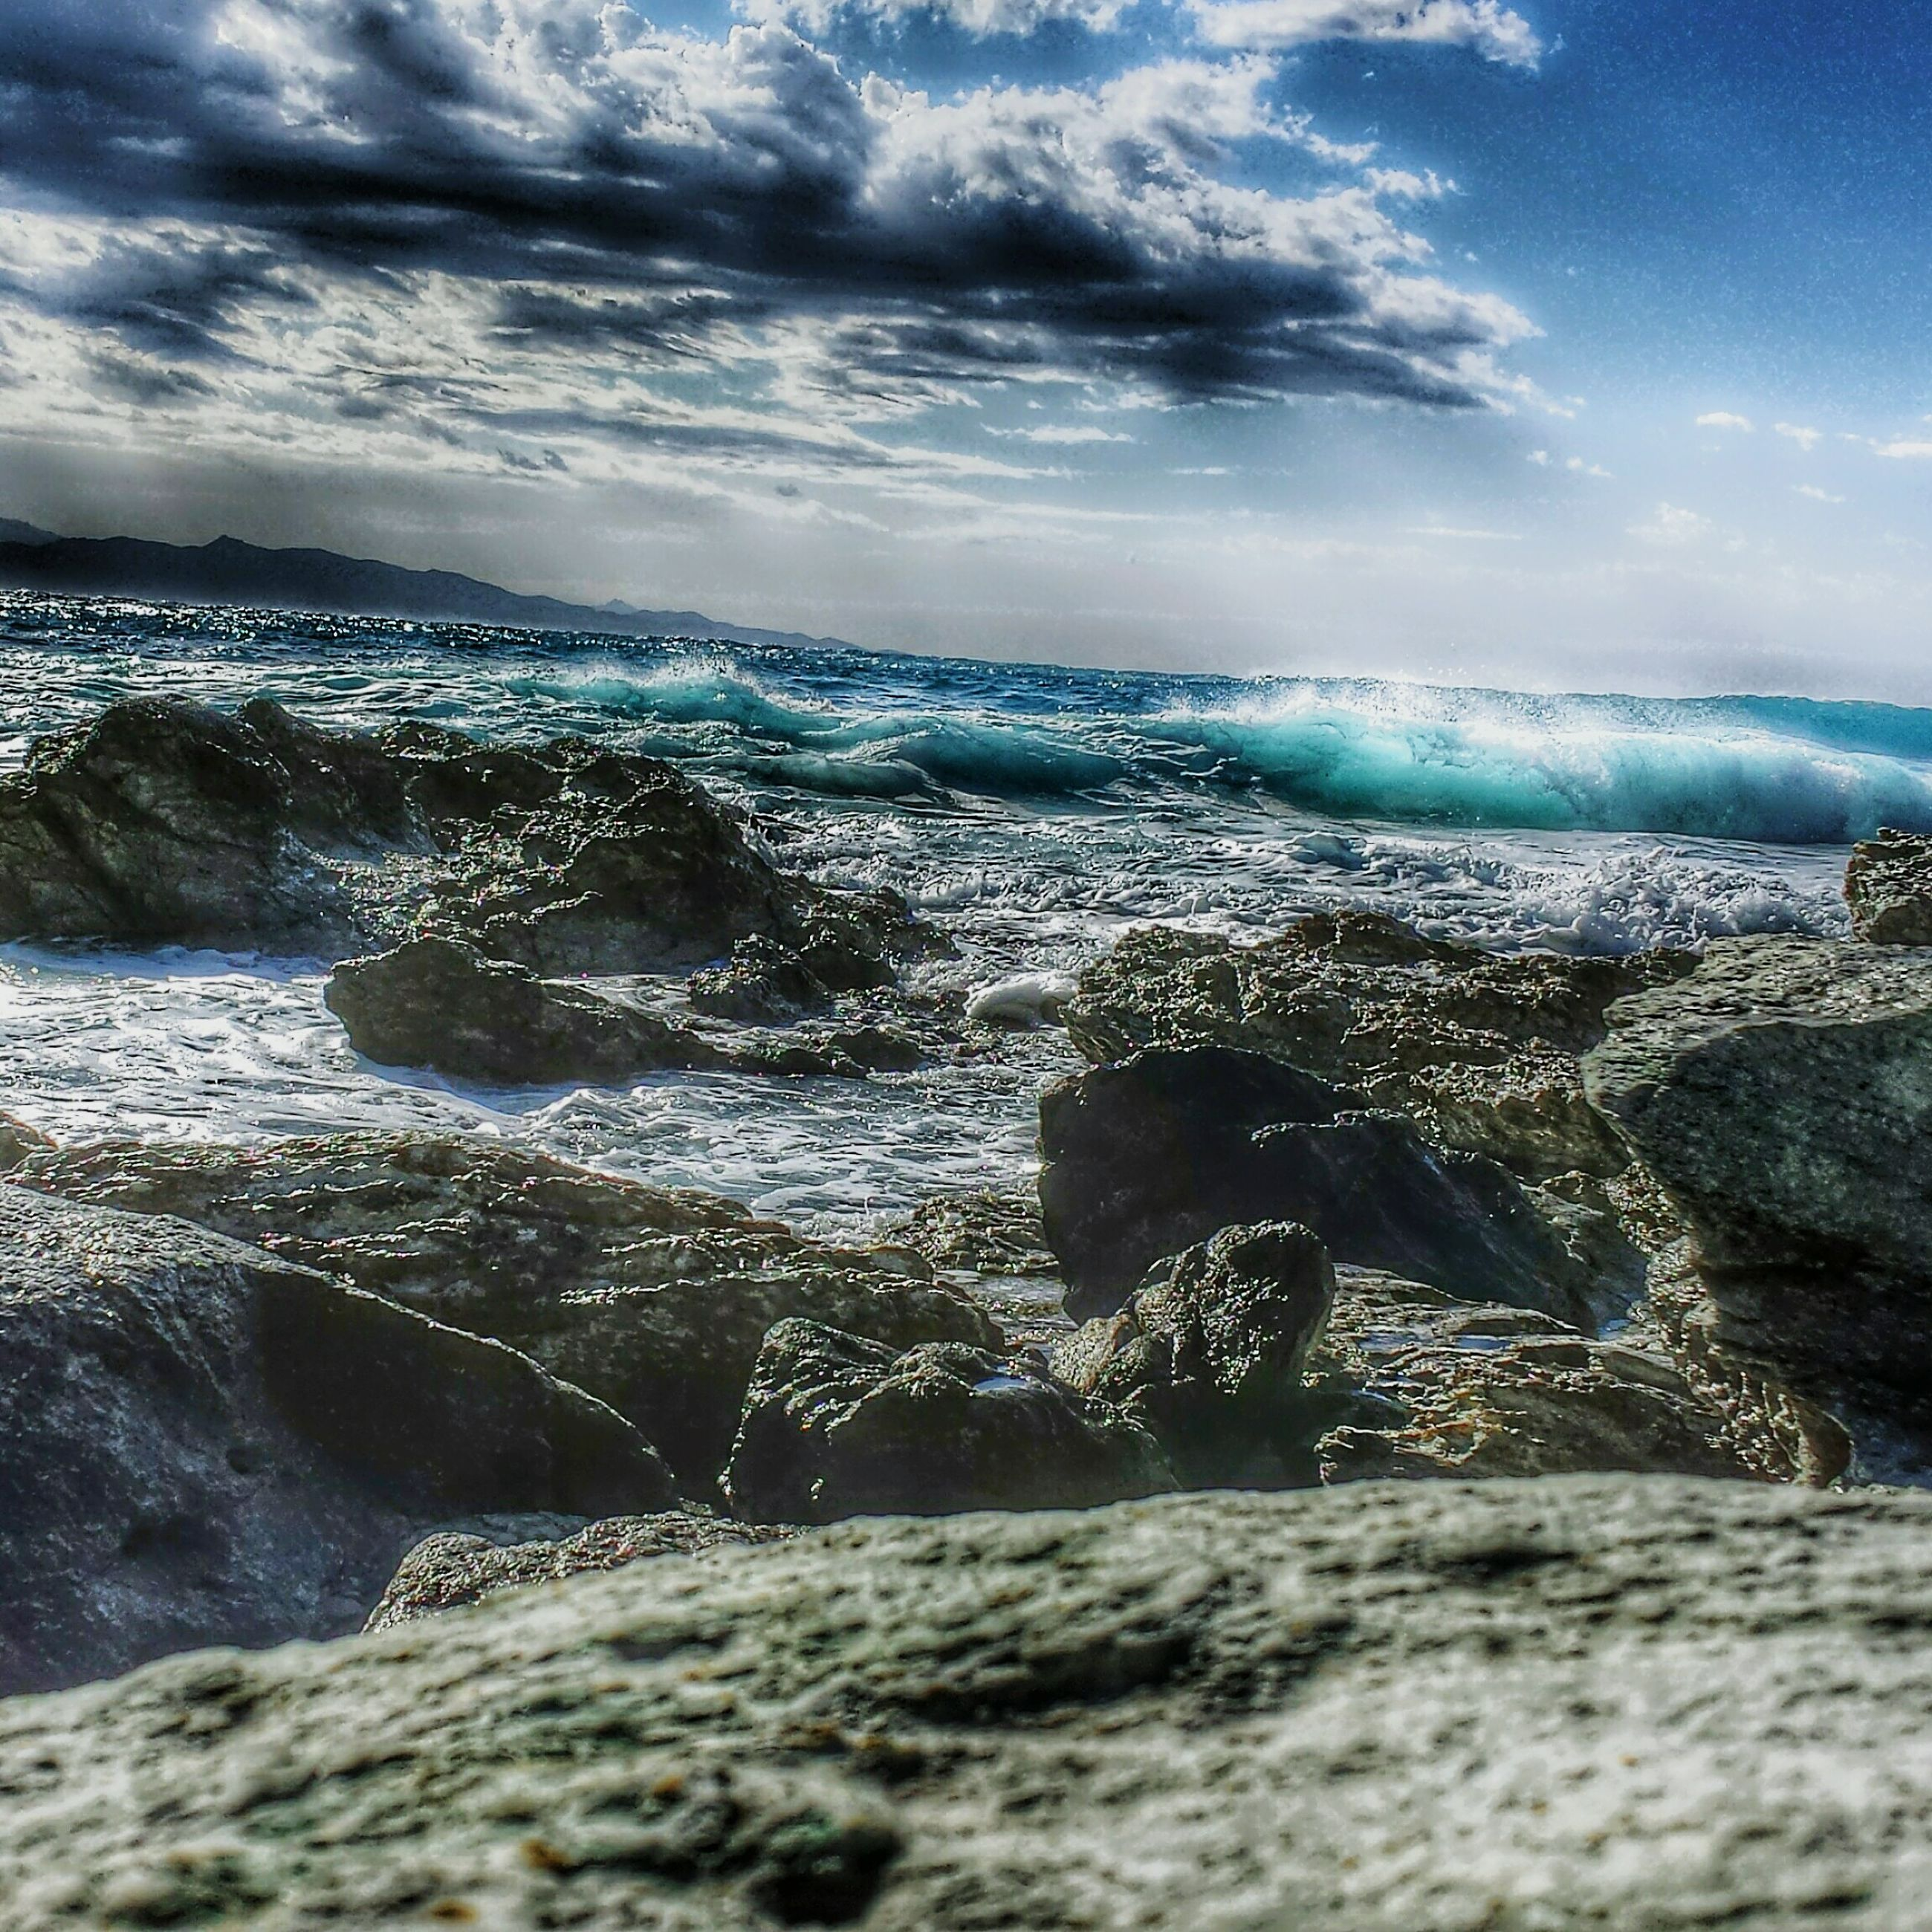 sea, water, sky, beach, scenics, shore, cloud - sky, wave, beauty in nature, horizon over water, tranquil scene, nature, tranquility, surf, sand, cloud, motion, cloudy, rock - object, idyllic